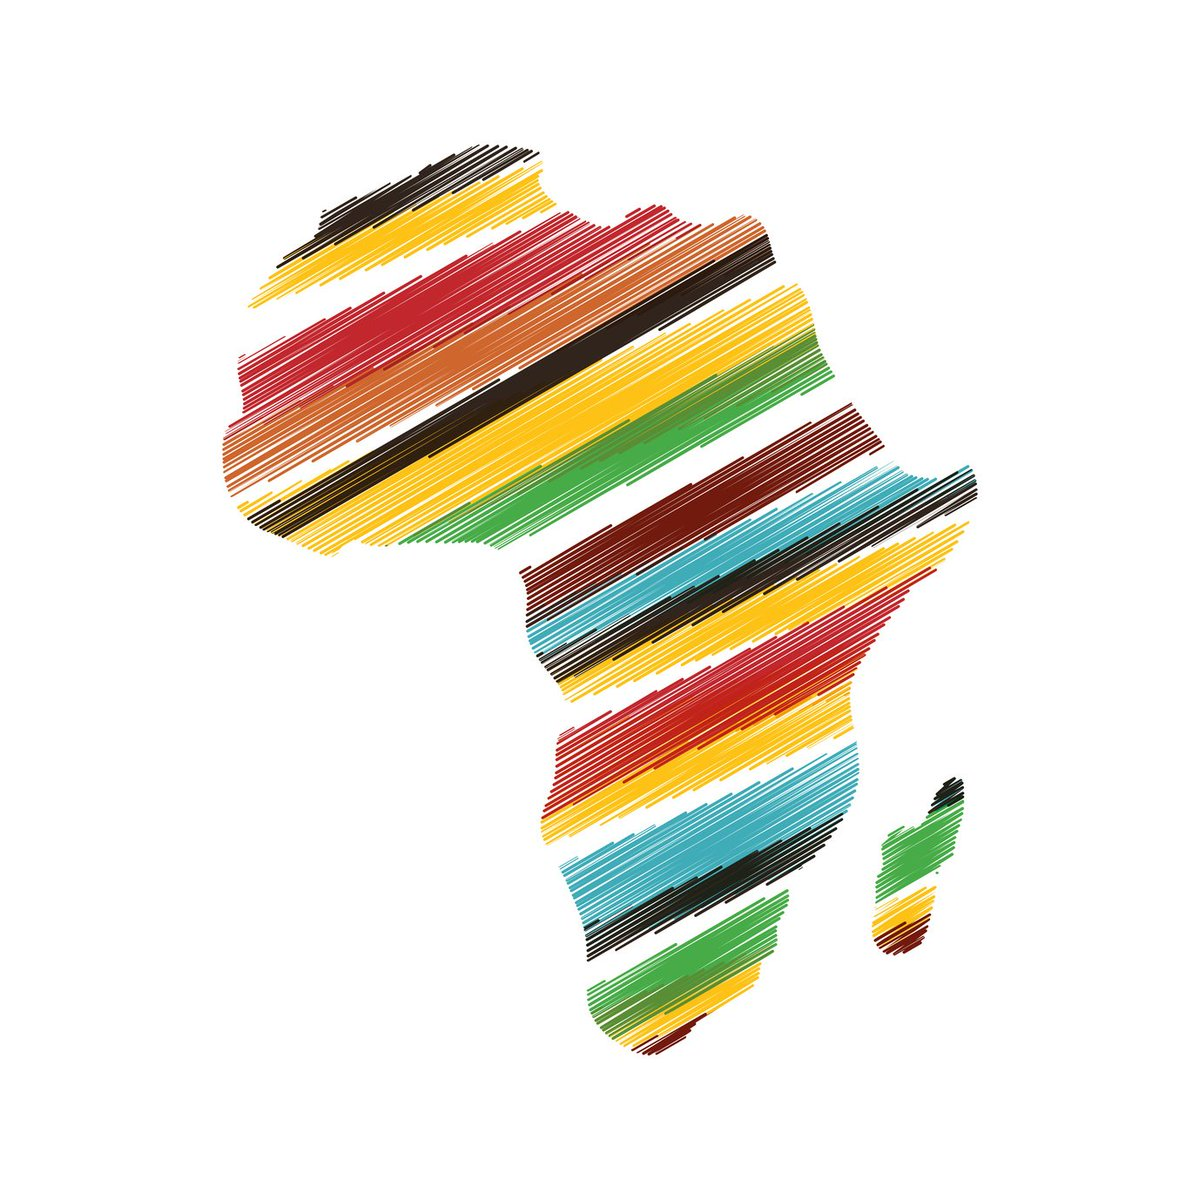 . and  bring  power to Africa's #blockchain:    #unbanked https://t.co/NKW1A2TNuL #fintech #FinancialInclusion